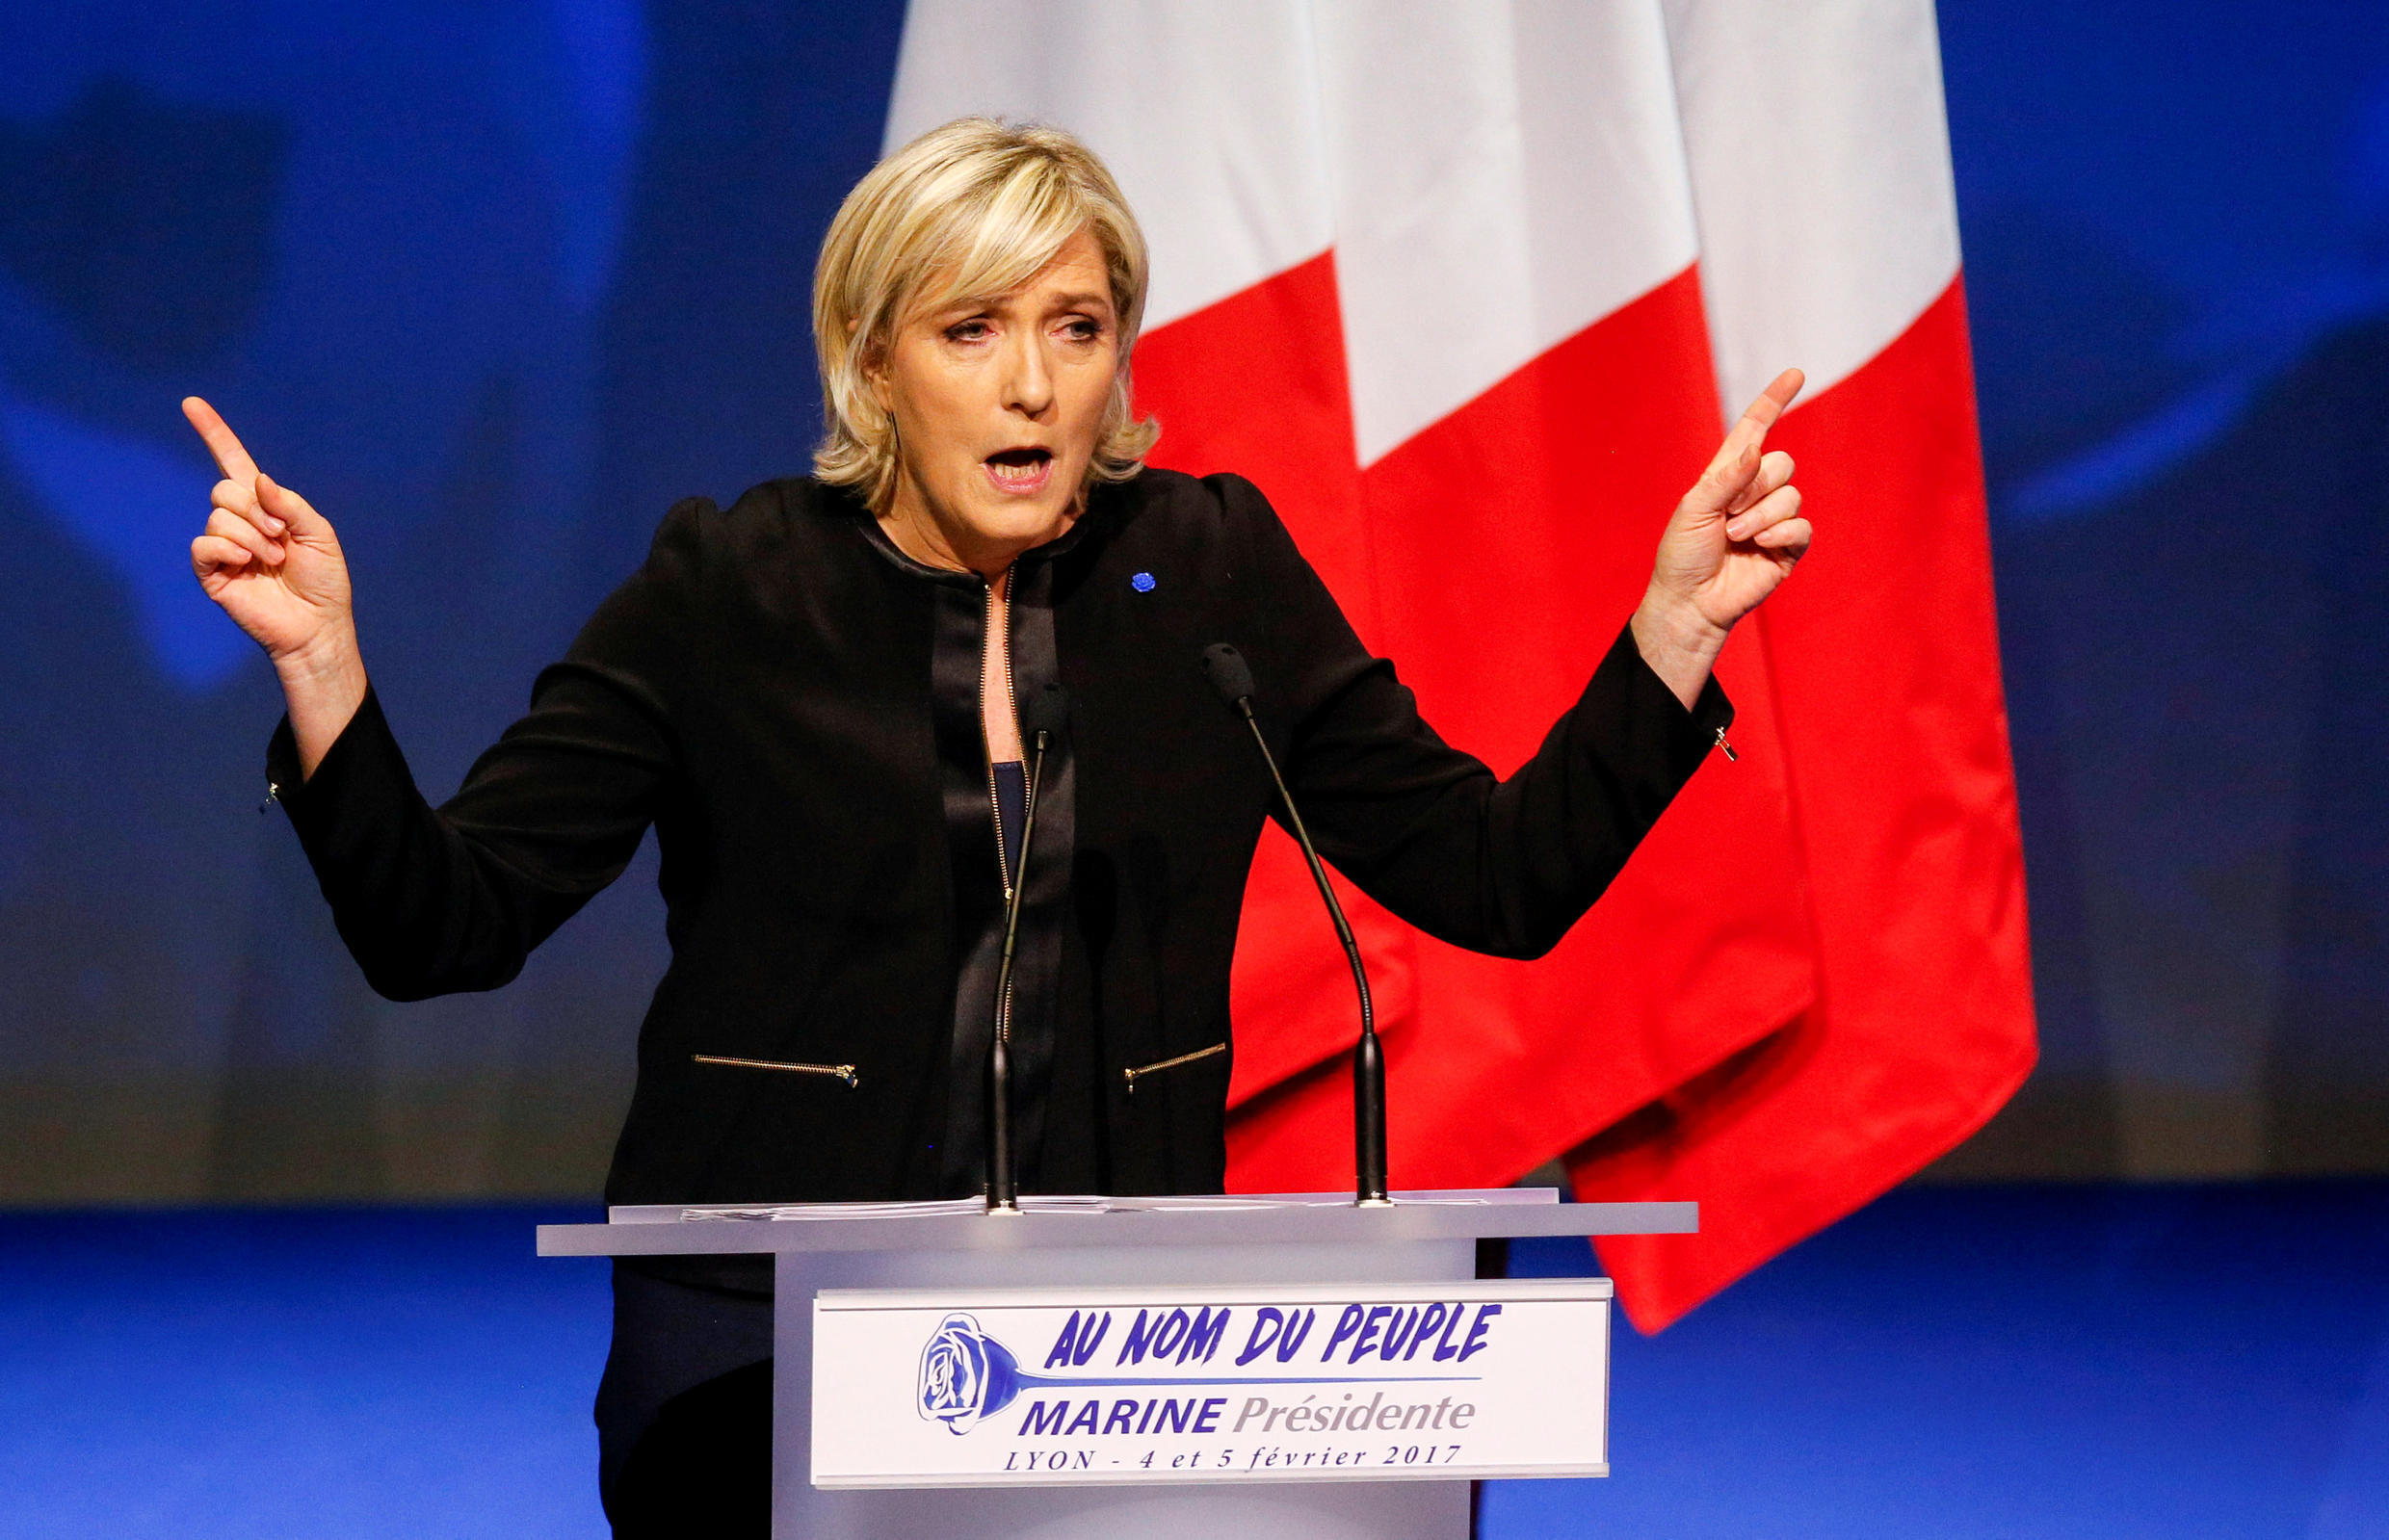 Front National presidential candidate Marine Le Pen